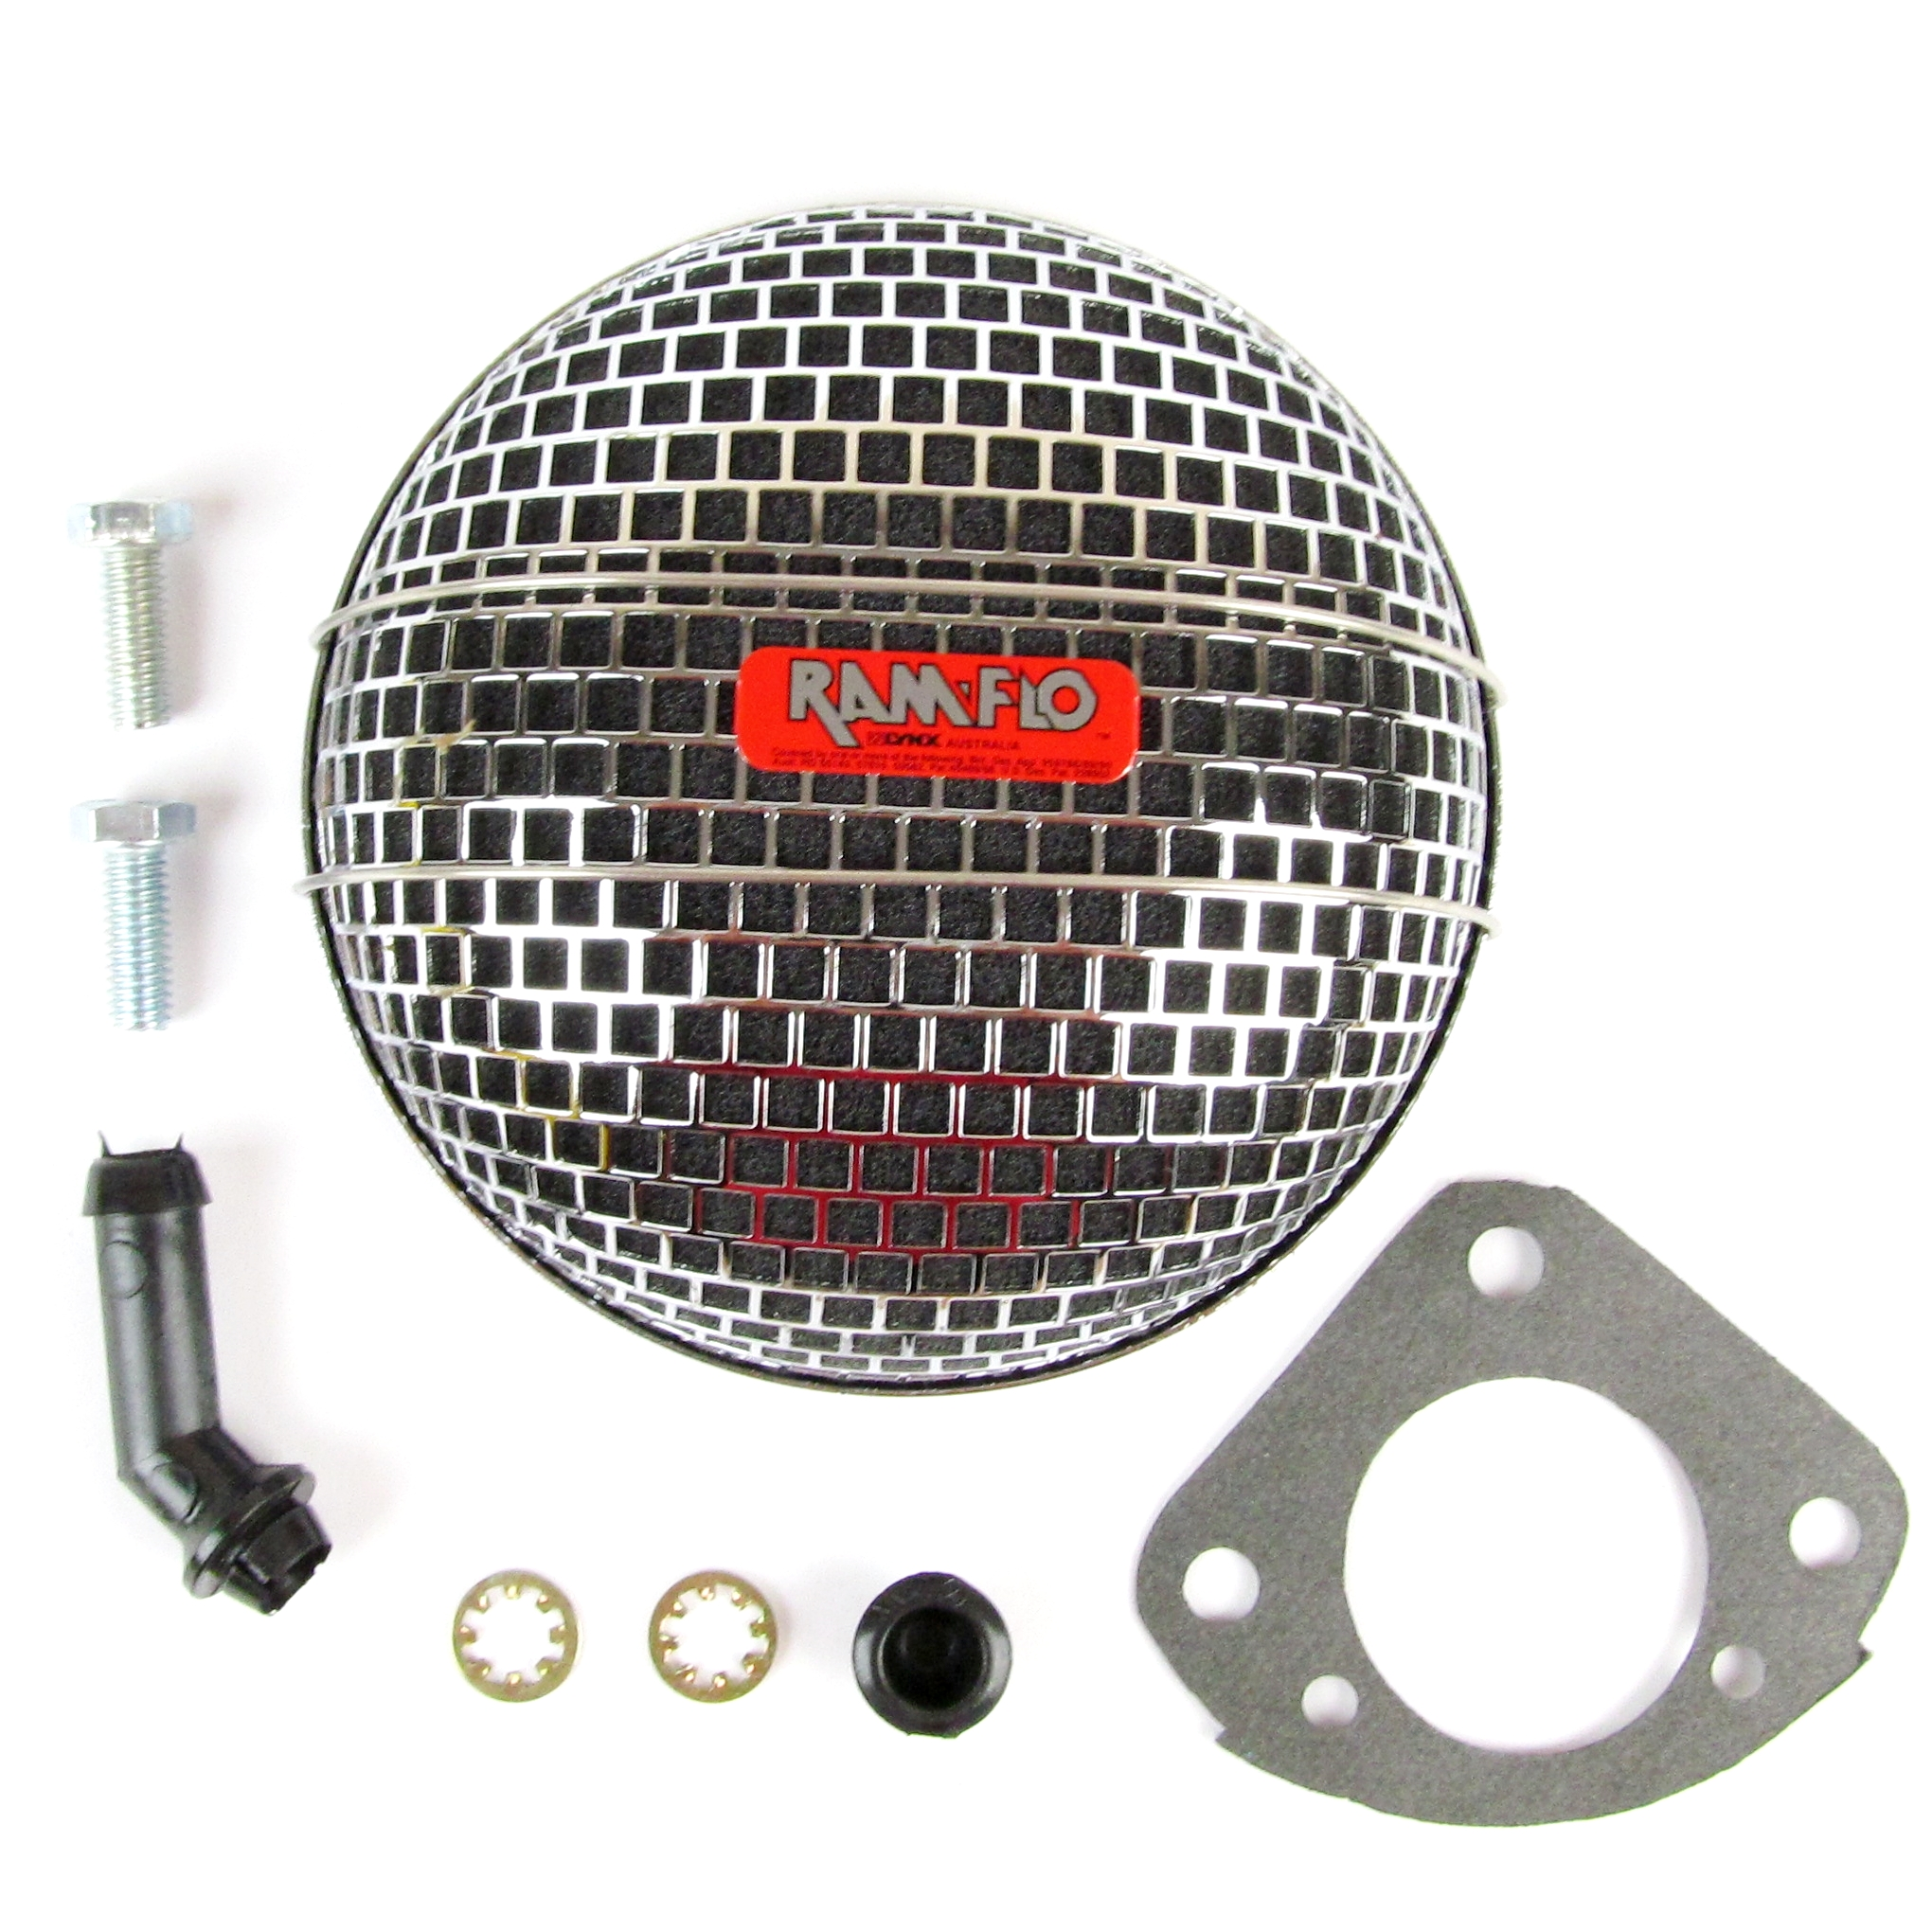 "LYNX RAMFLO AIR FILTER FOR SU HS6 & HD6 1¾ ""CARB / CARBURADOR"